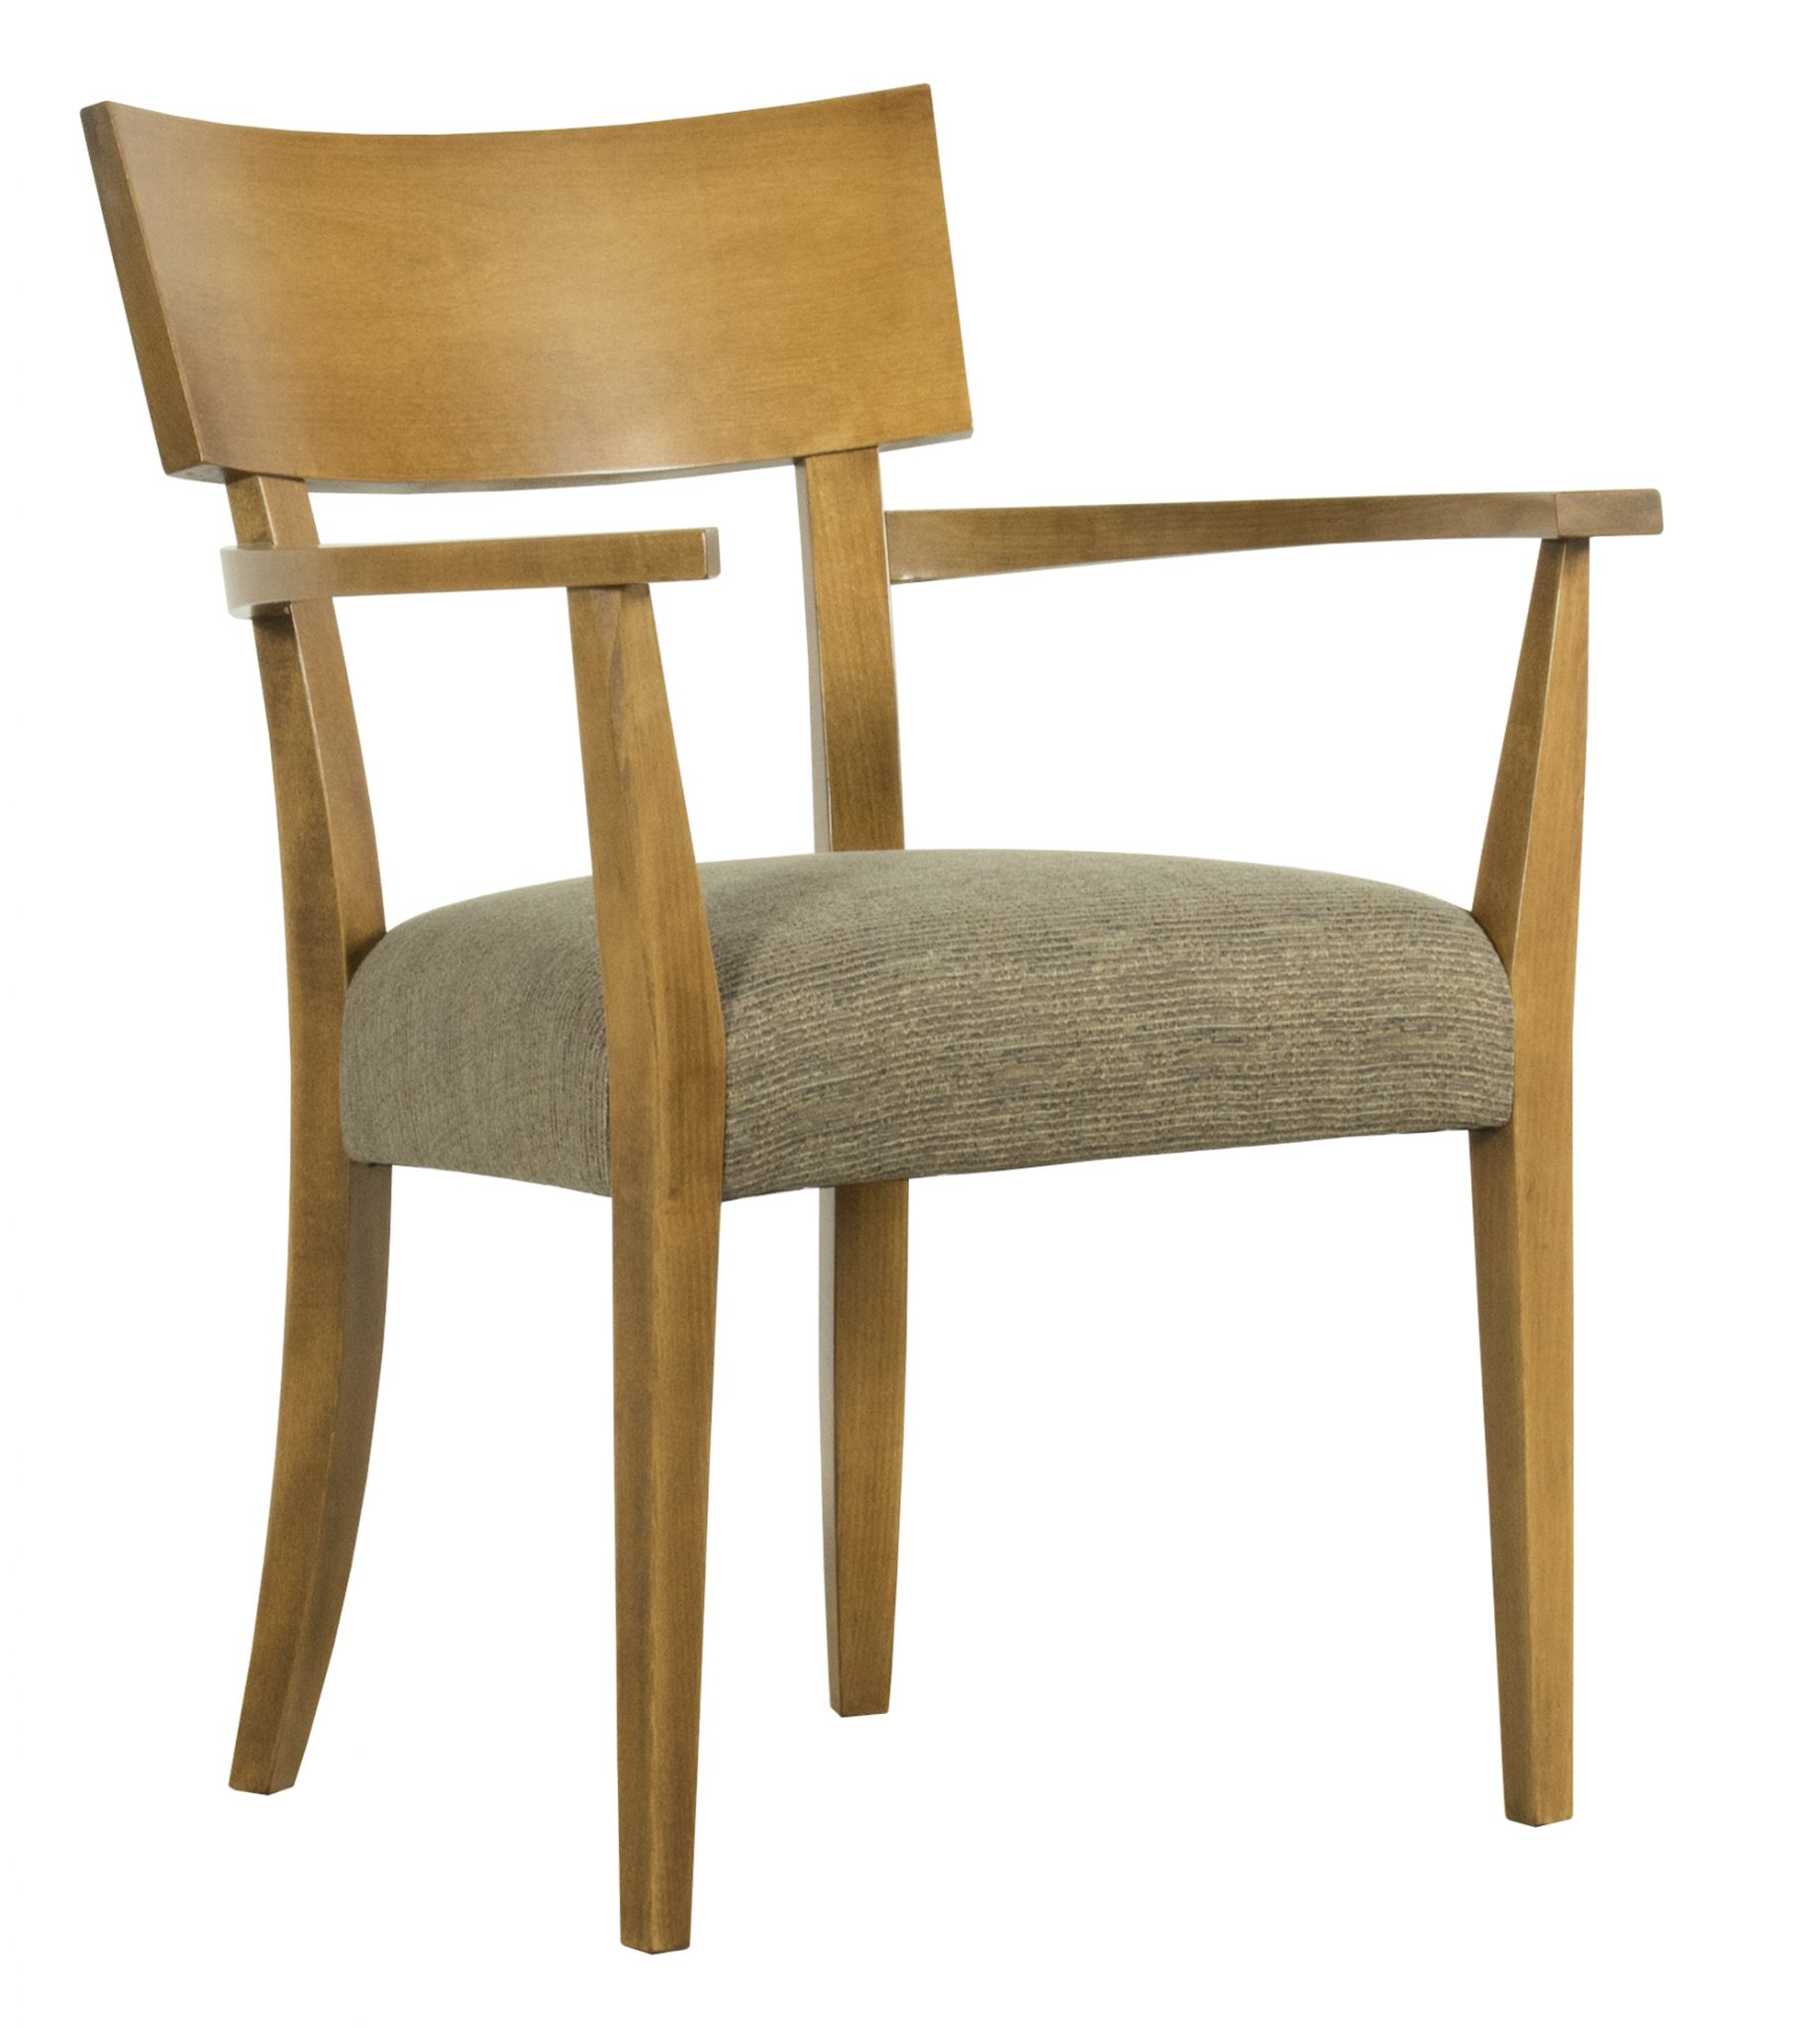 Model 103 Arm Chair